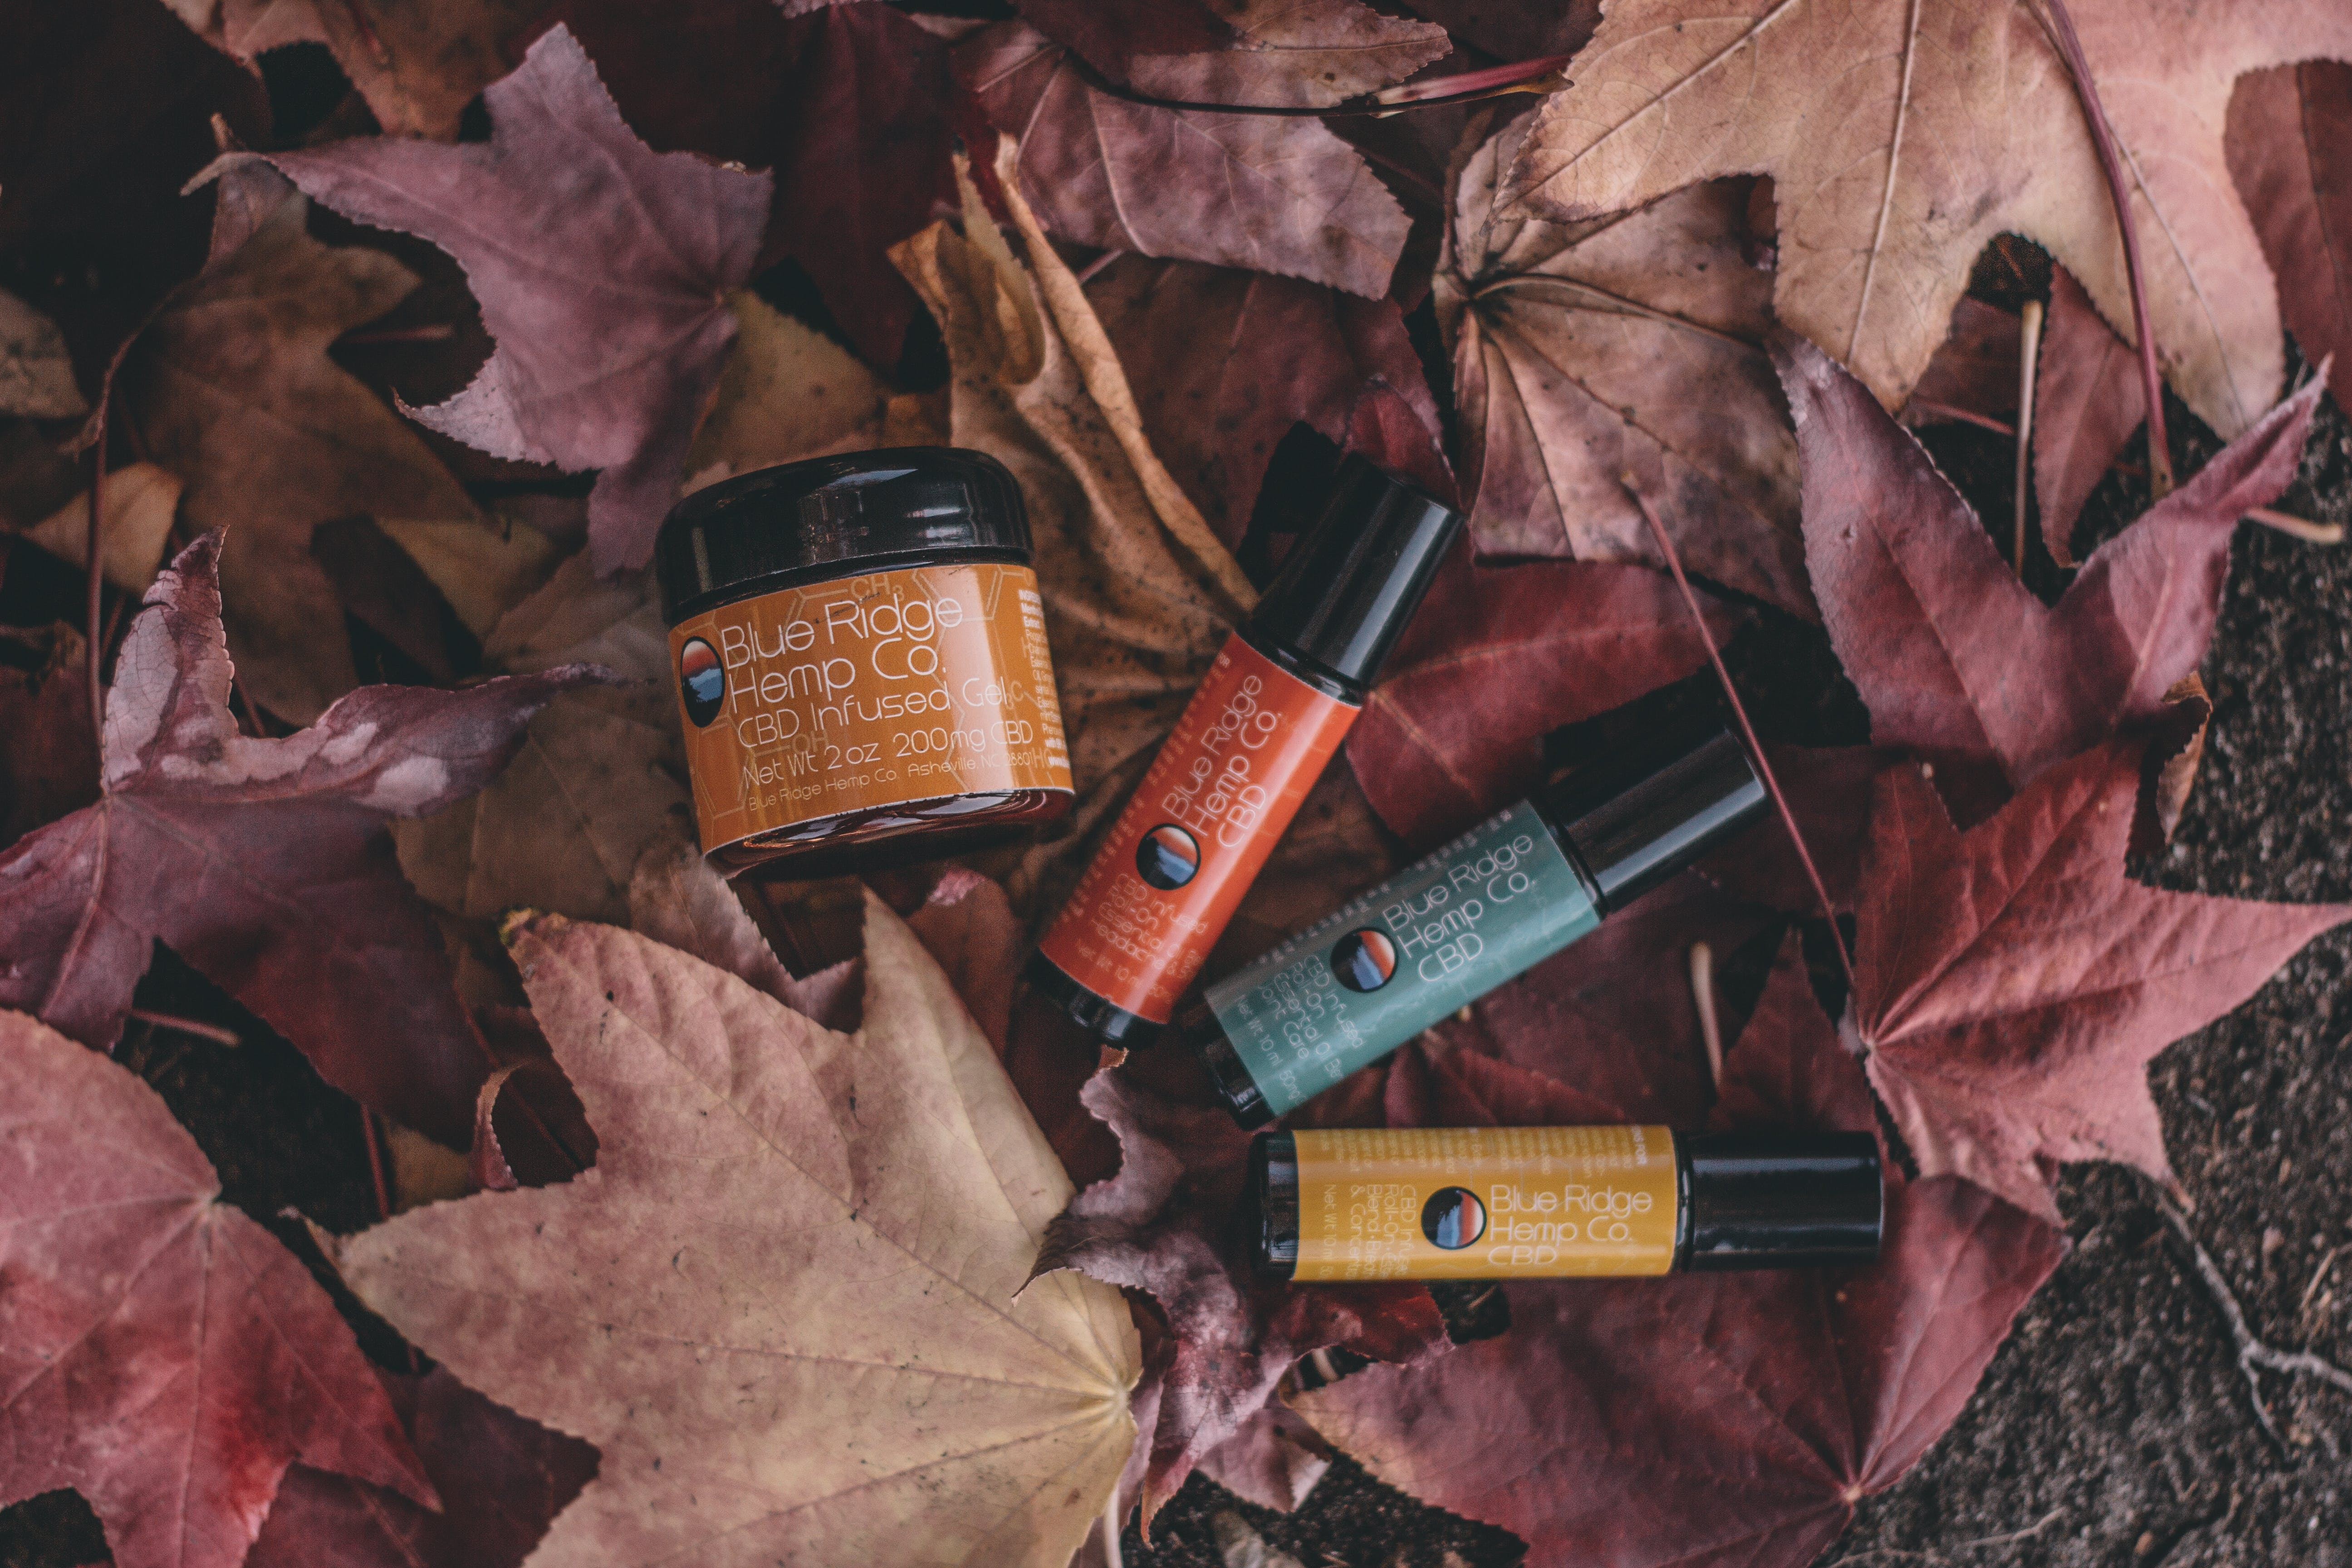 Flat Lay Photography of Several Product Bottles on Withered Leaves